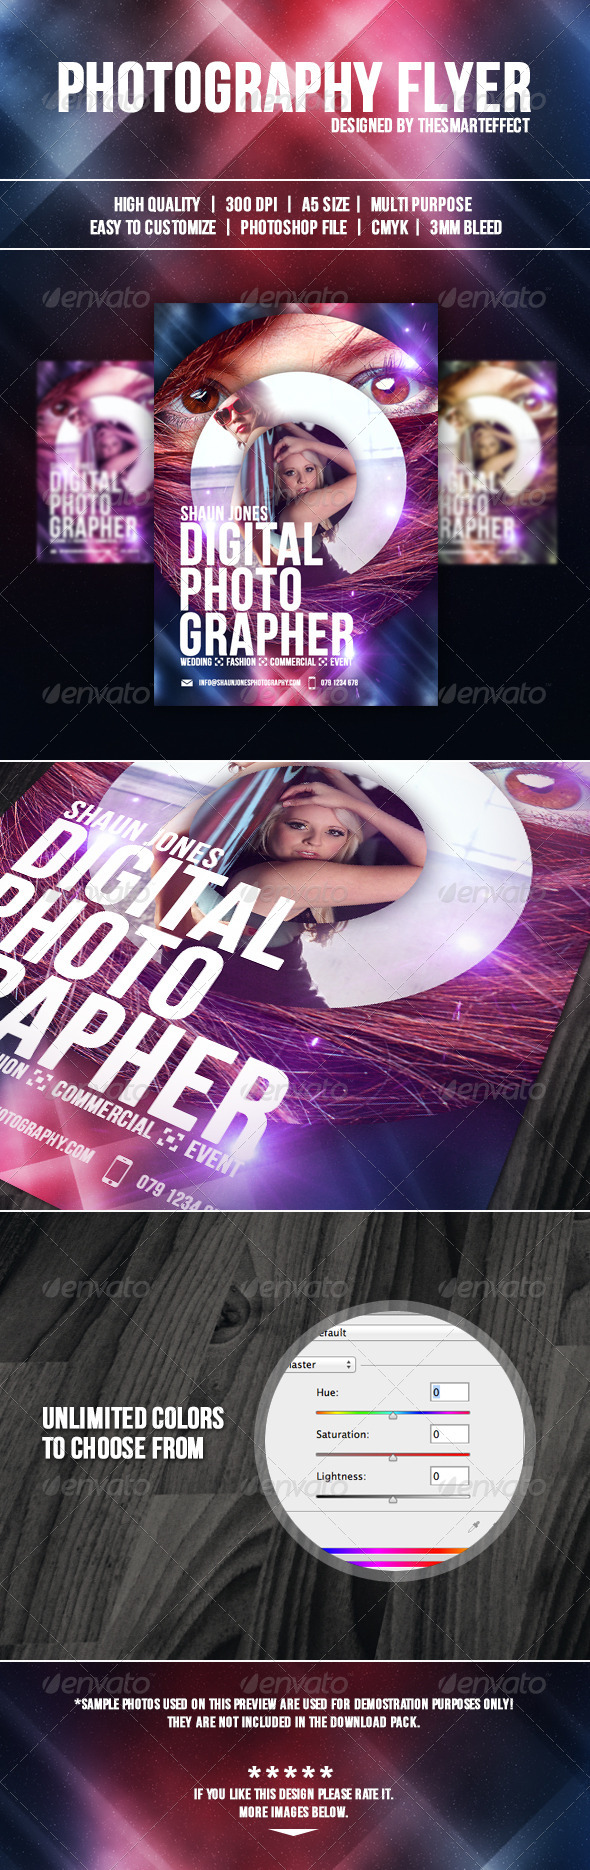 GraphicRiver Photography Flyer 3854762